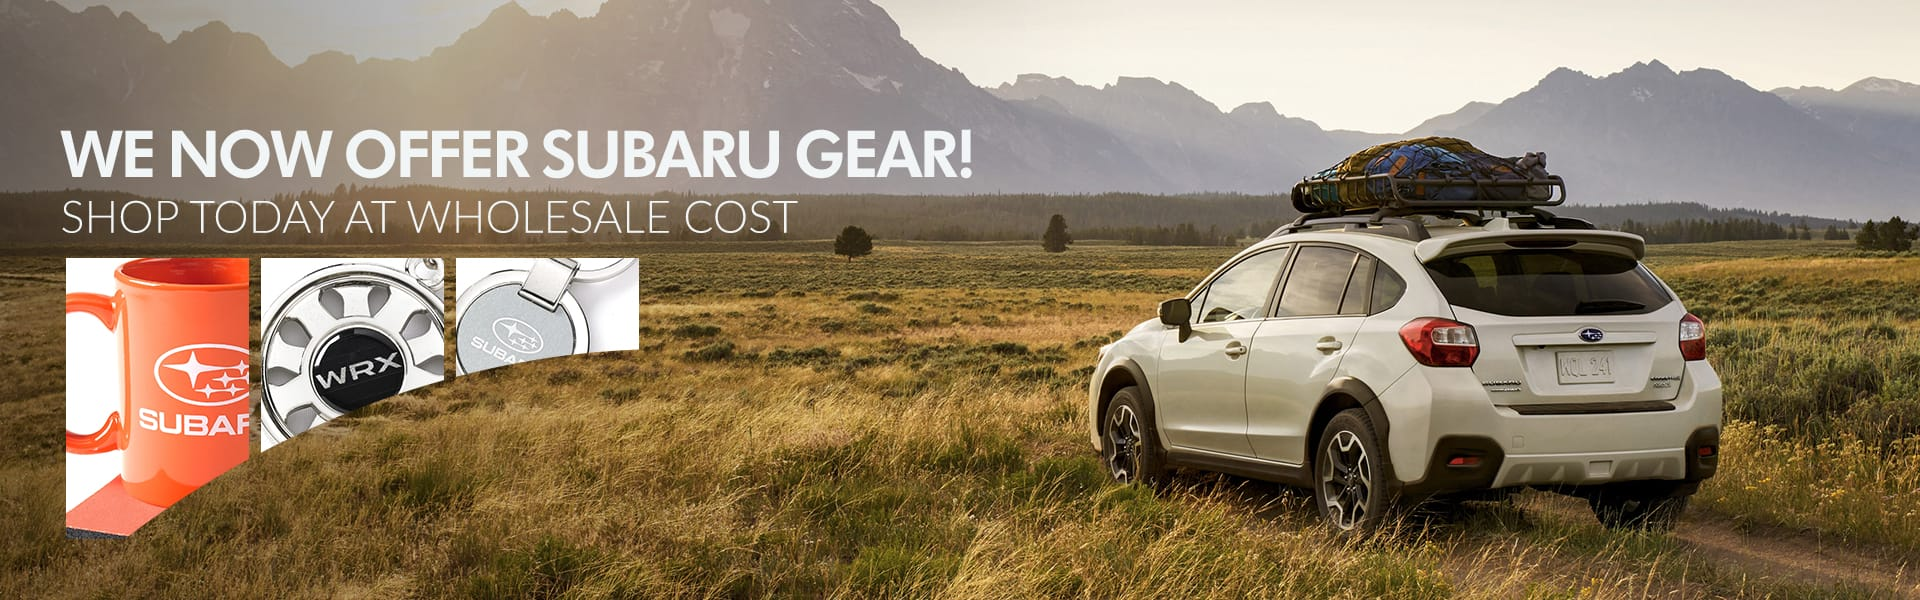 Official Subaru Gear at wholesale cost